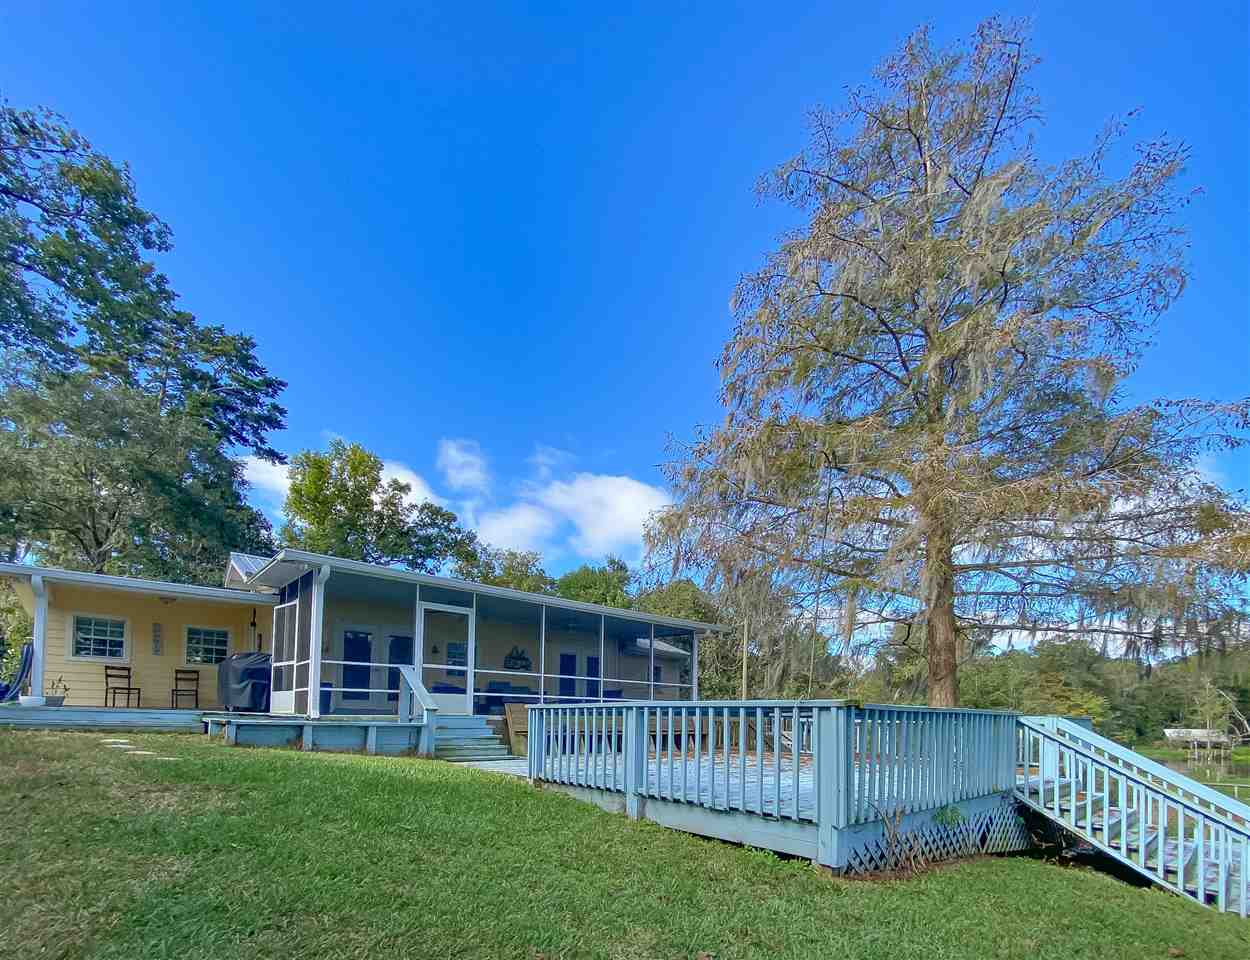 Adorable lakefront cottage available for sale! This wonderfully maintained home will make the perfect getaway, investment opportunity, or retirement home. Featuring an expansive deck and screened in back porch, you will lack no space for entertaining. Enjoy evenings on the dock fishing or relaxing with gorgeous views of Lake Talquin. Boat lift included! This home comes mostly furnished and has fresh paint throughout and new carpet in the bedrooms. Don't miss this great property! Call today!